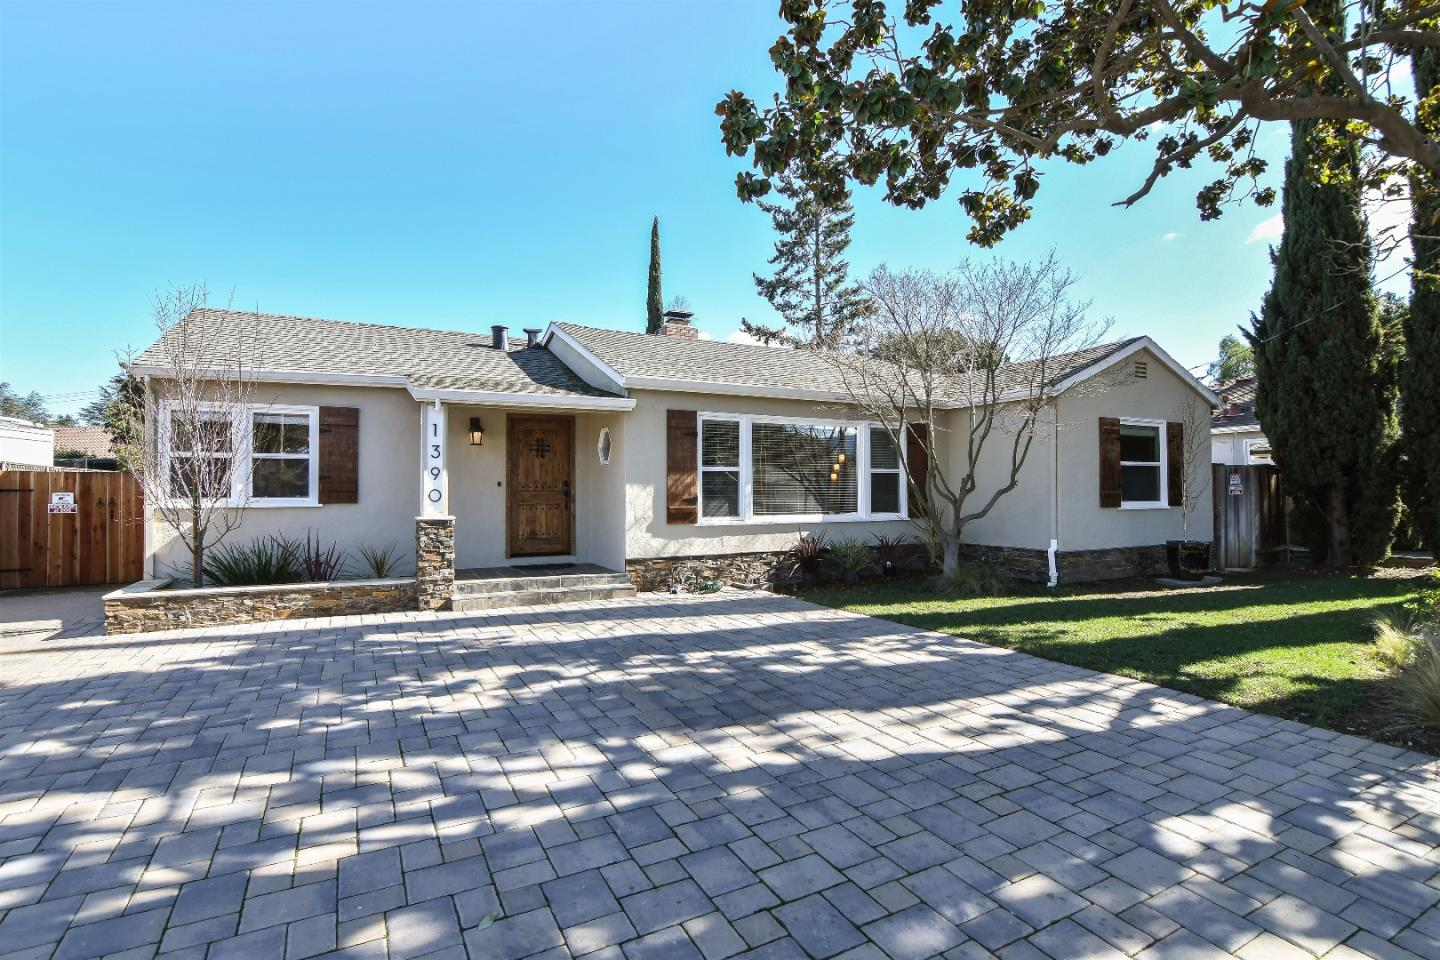 Additional photo for property listing at 1390 Burrows Rd  CAMPBELL, CALIFORNIA 95008